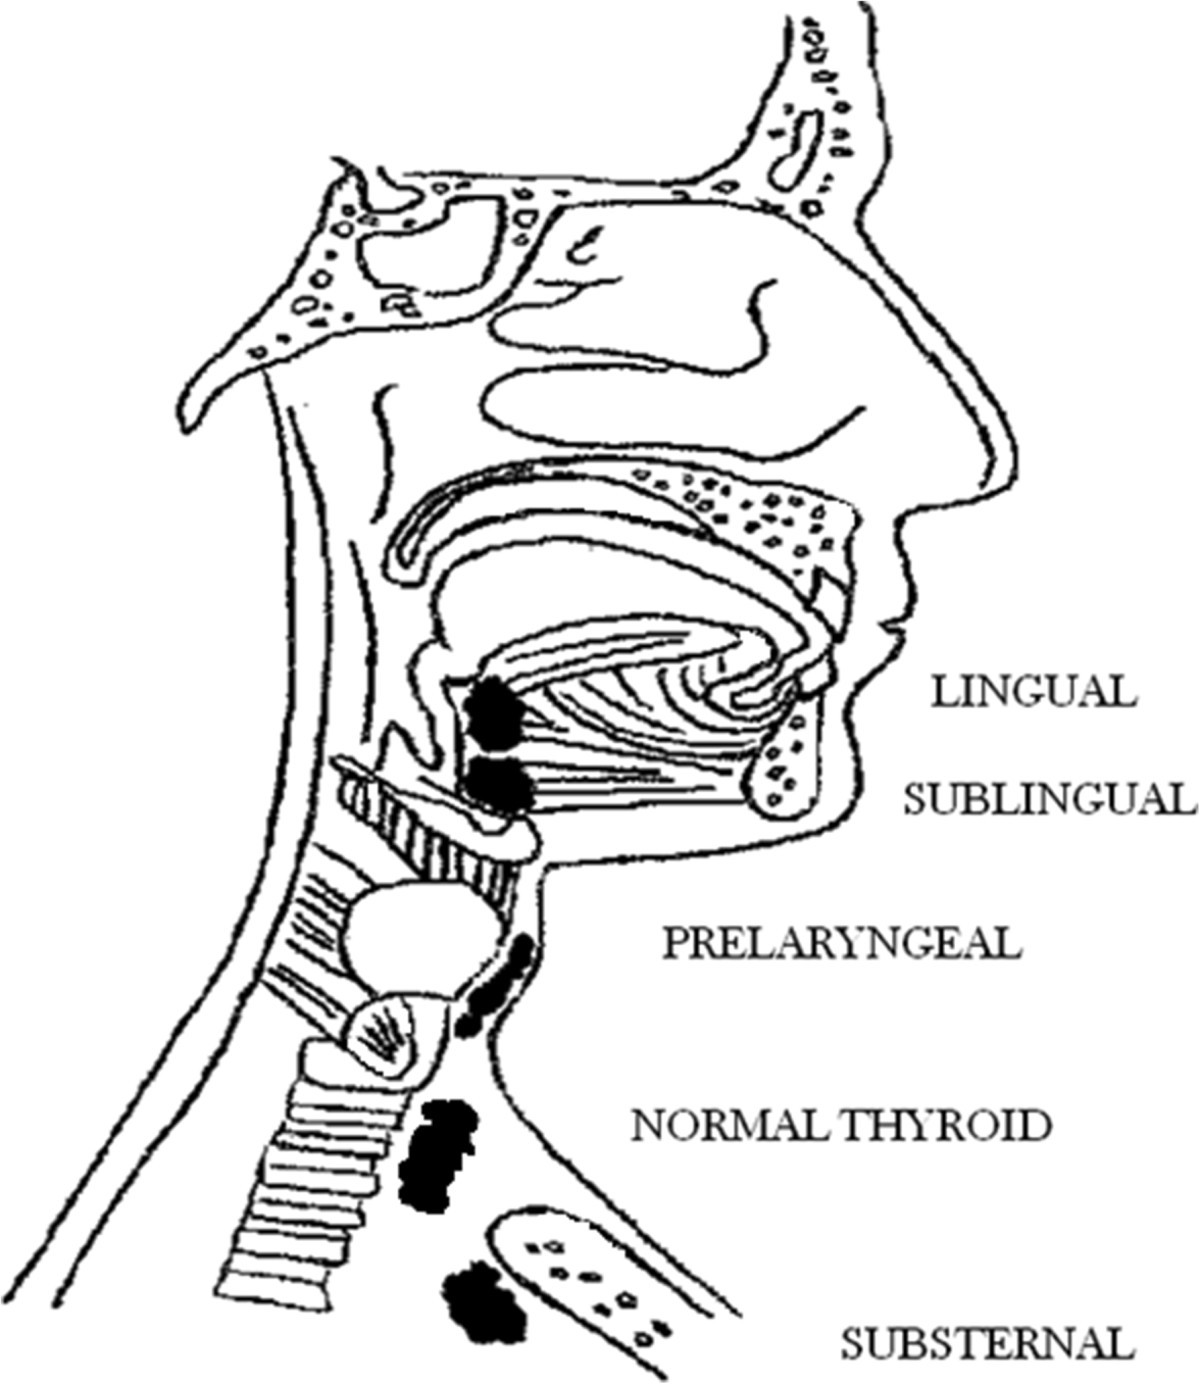 Ectopic thyroid tissue in the head and neck: a case series | BMC ...